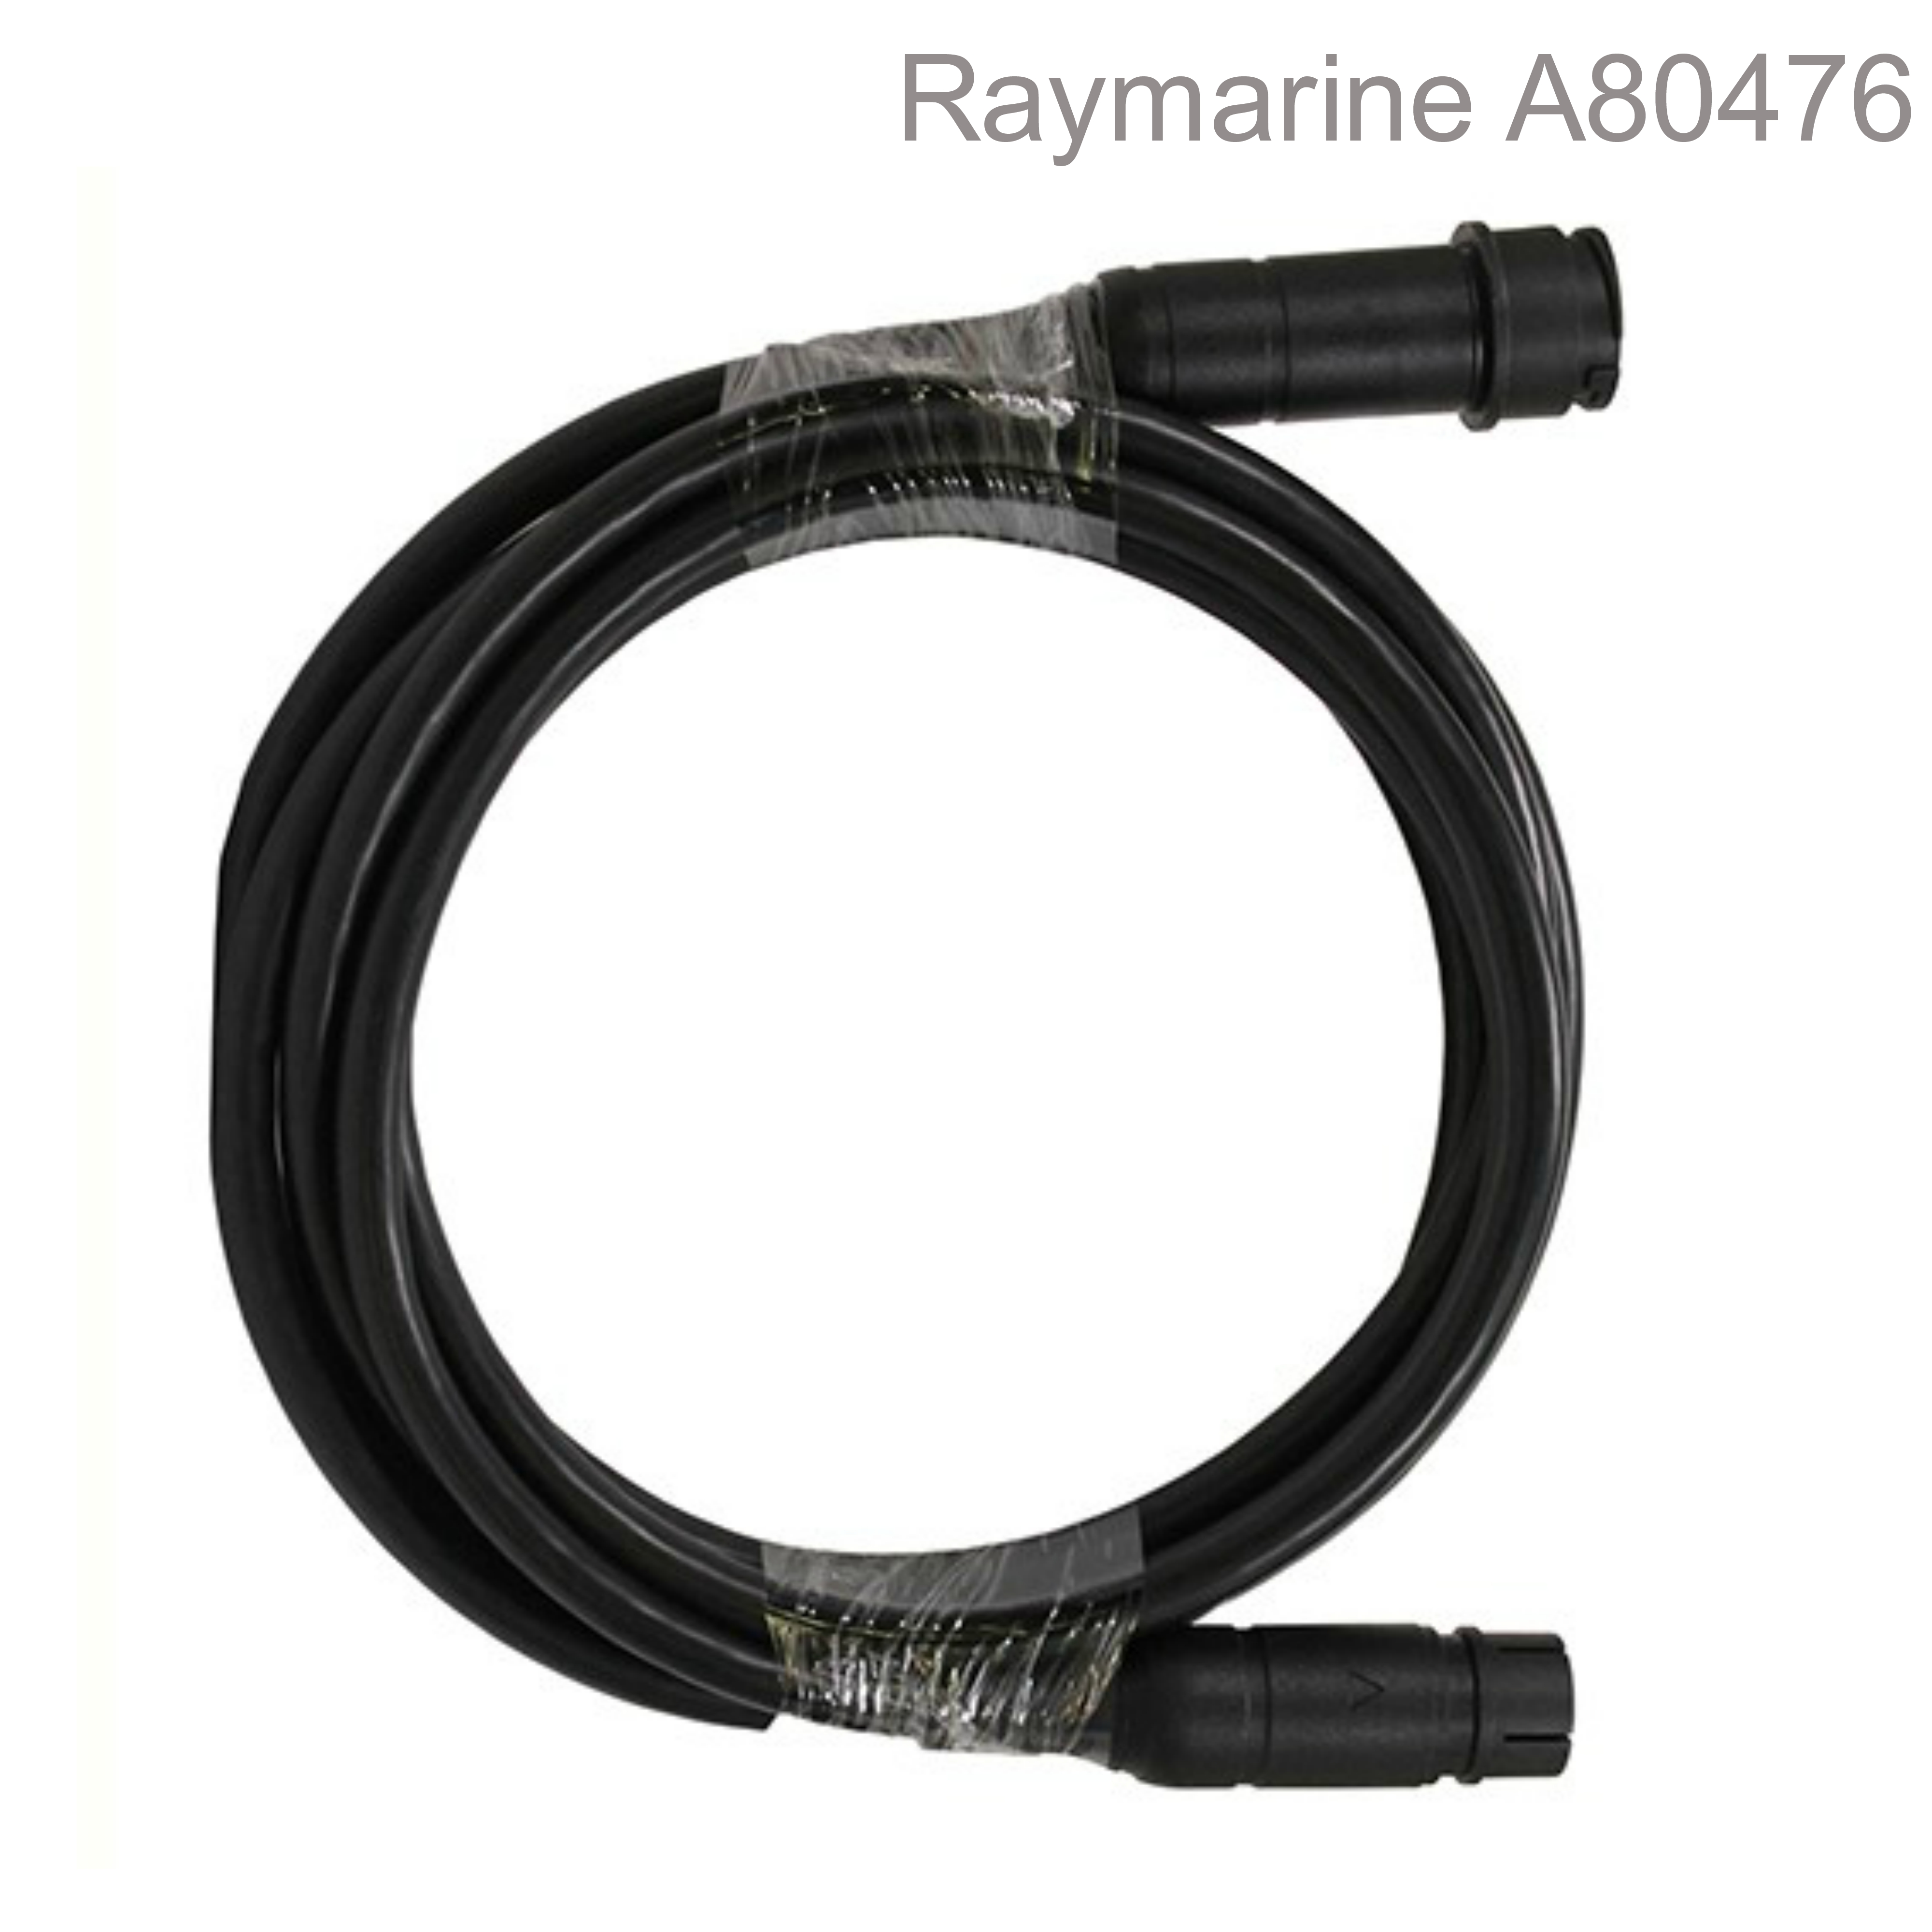 Raymarine A80476|RealVision 3D Transducer Extension Cable|5m|Twist-lock Connector|Waterproof